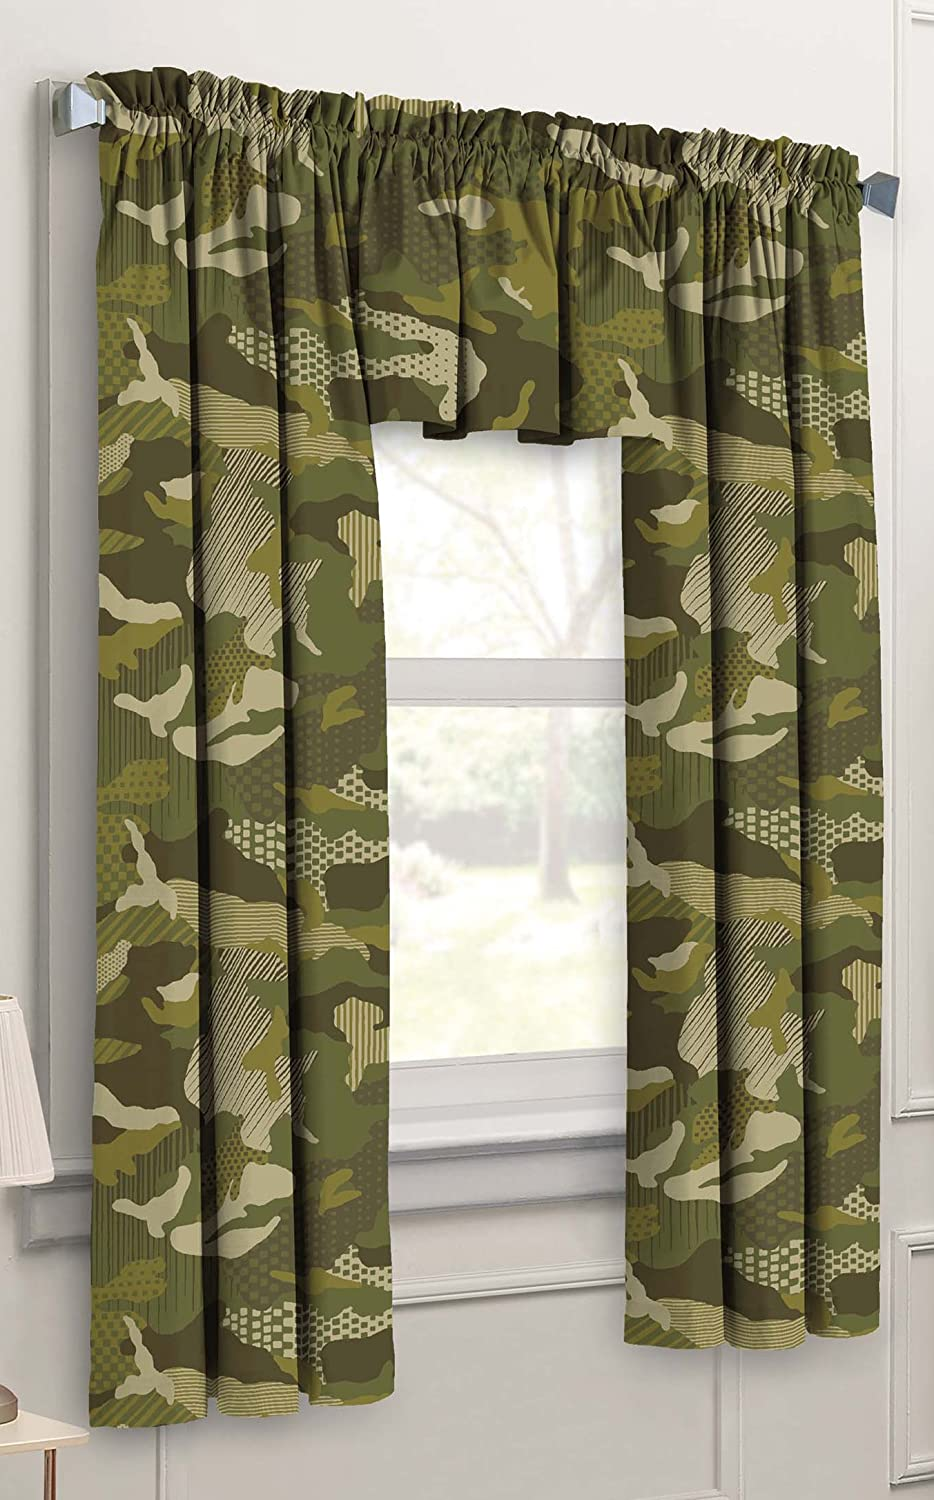 3-Piece Camouflage Kids Bedroom Curtain Panel Set, Green